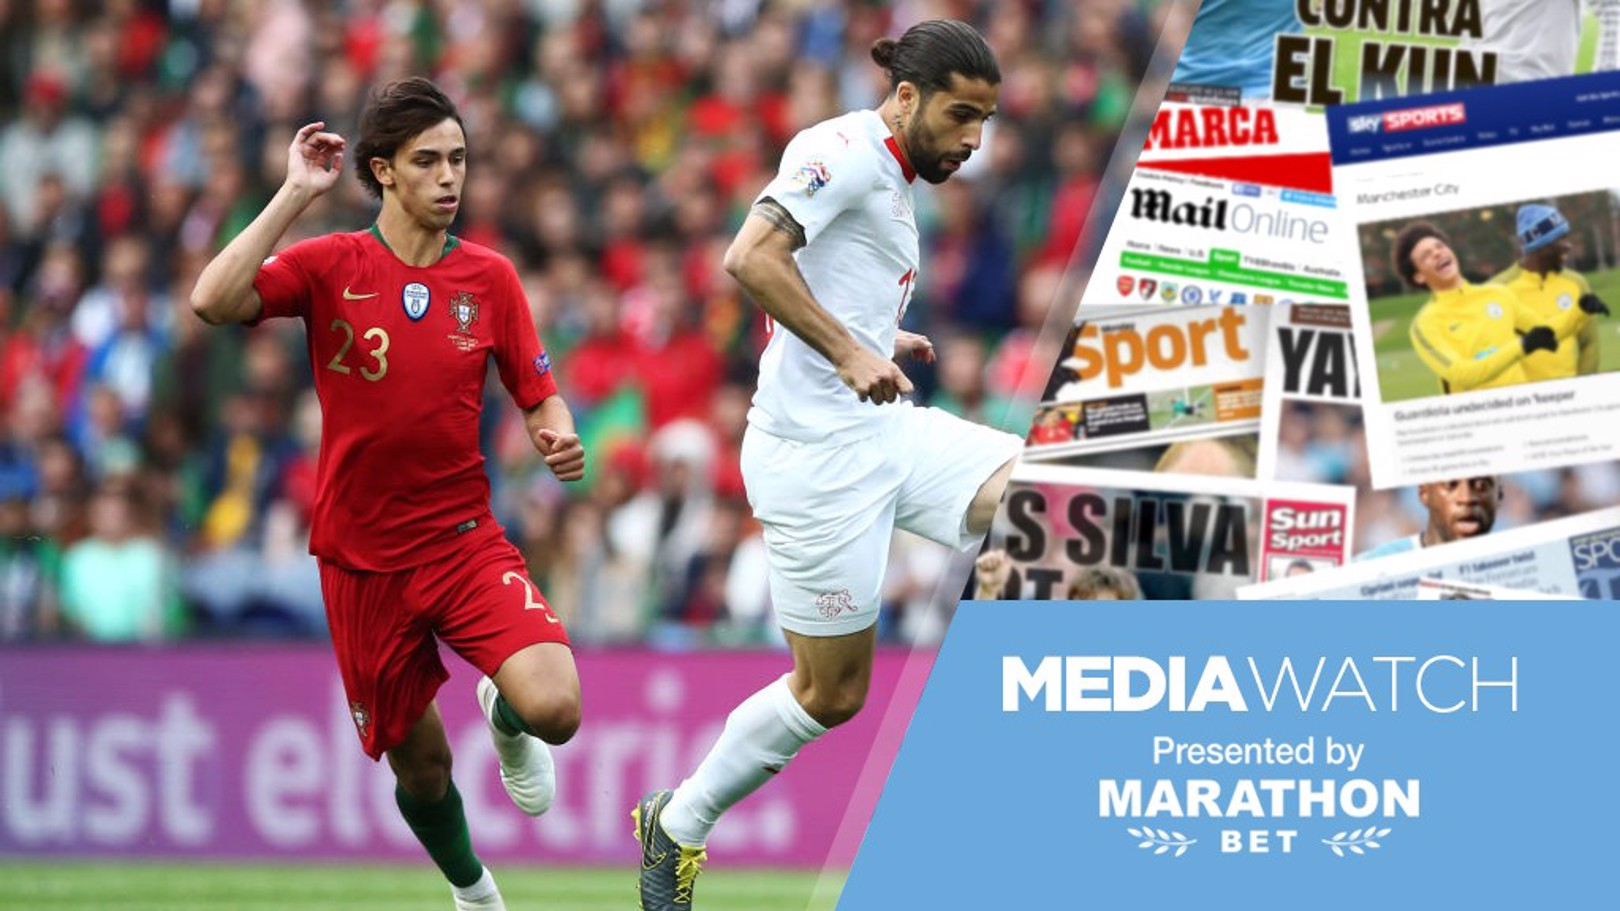 RUMOUR MILL: The press continue to link City with Joao Felix.